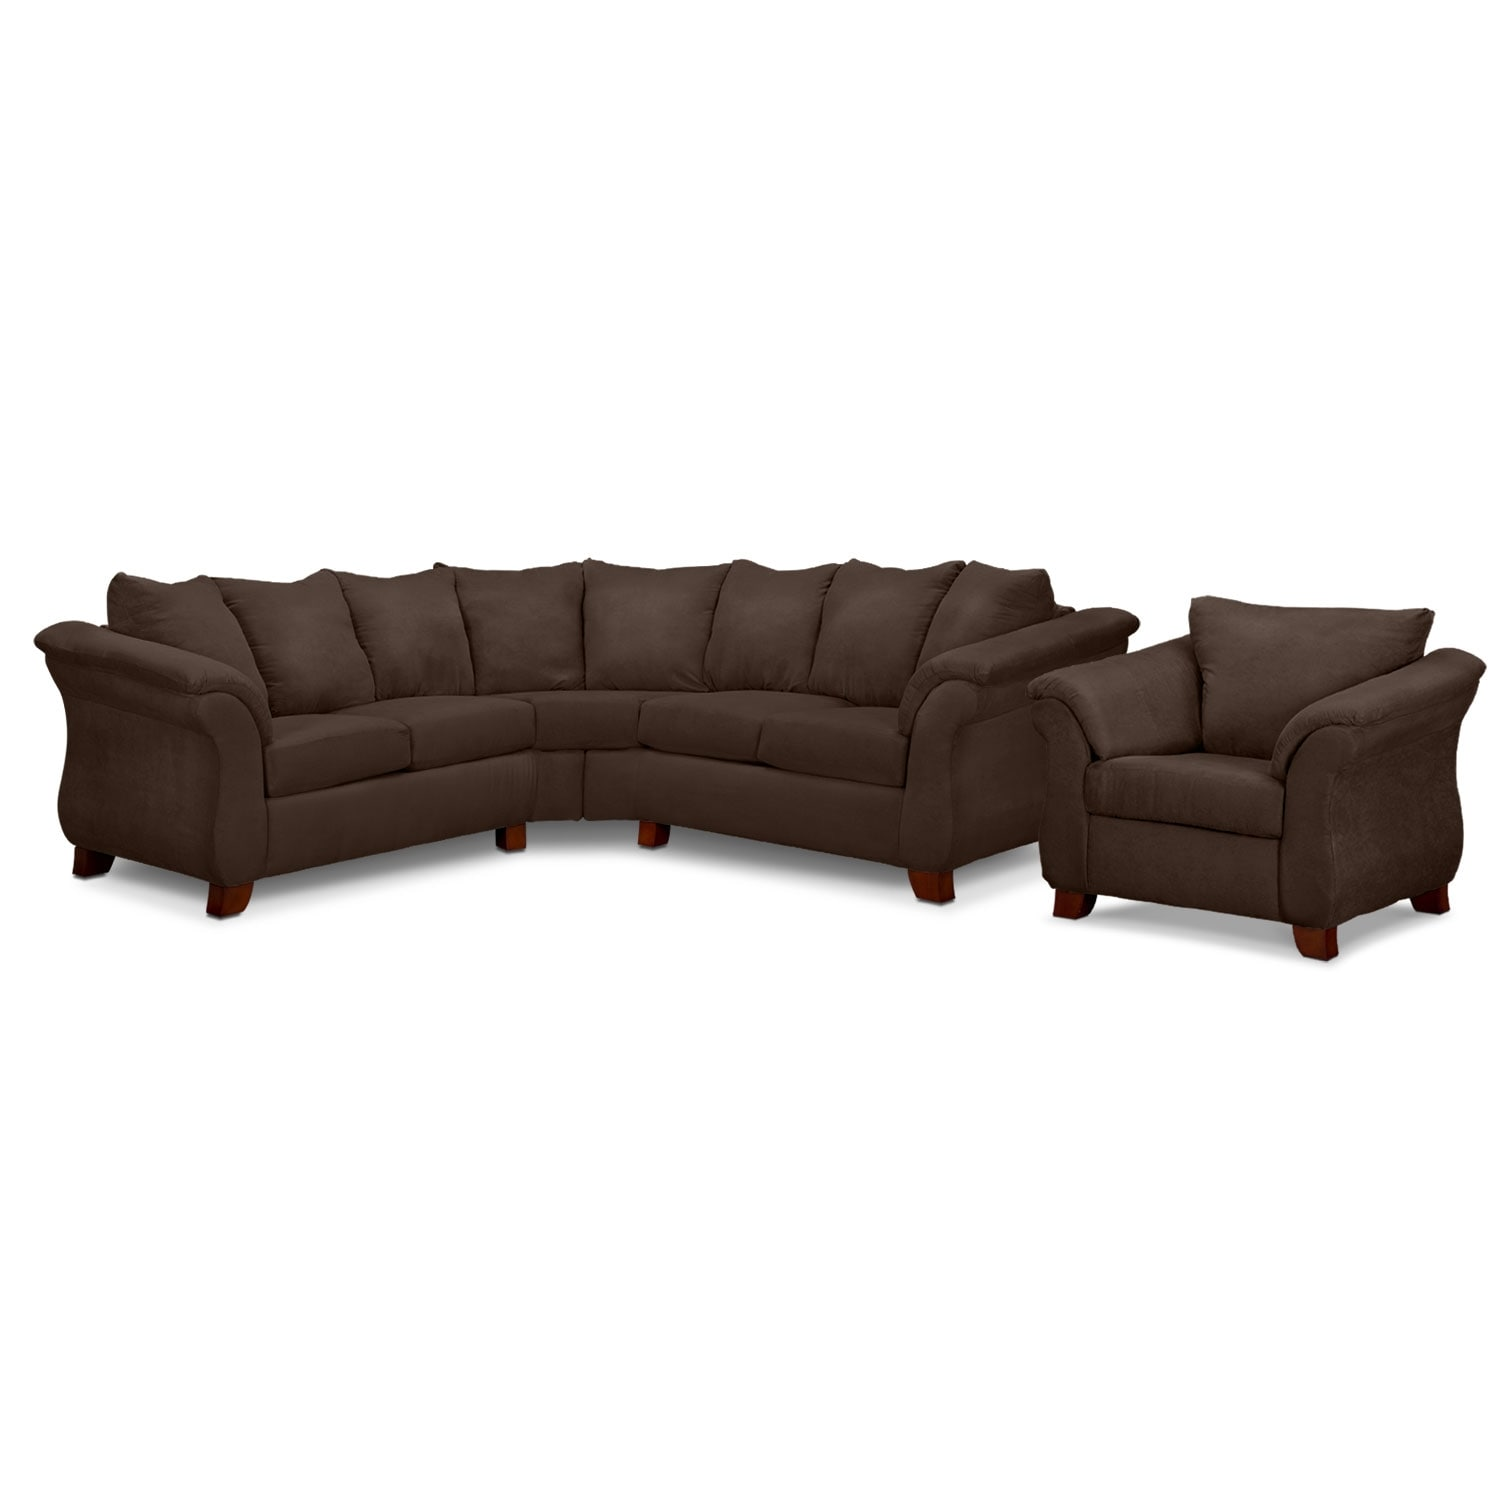 Living Room Furniture - Adrian 2-Piece Sectional and Chair Set - Chocolate